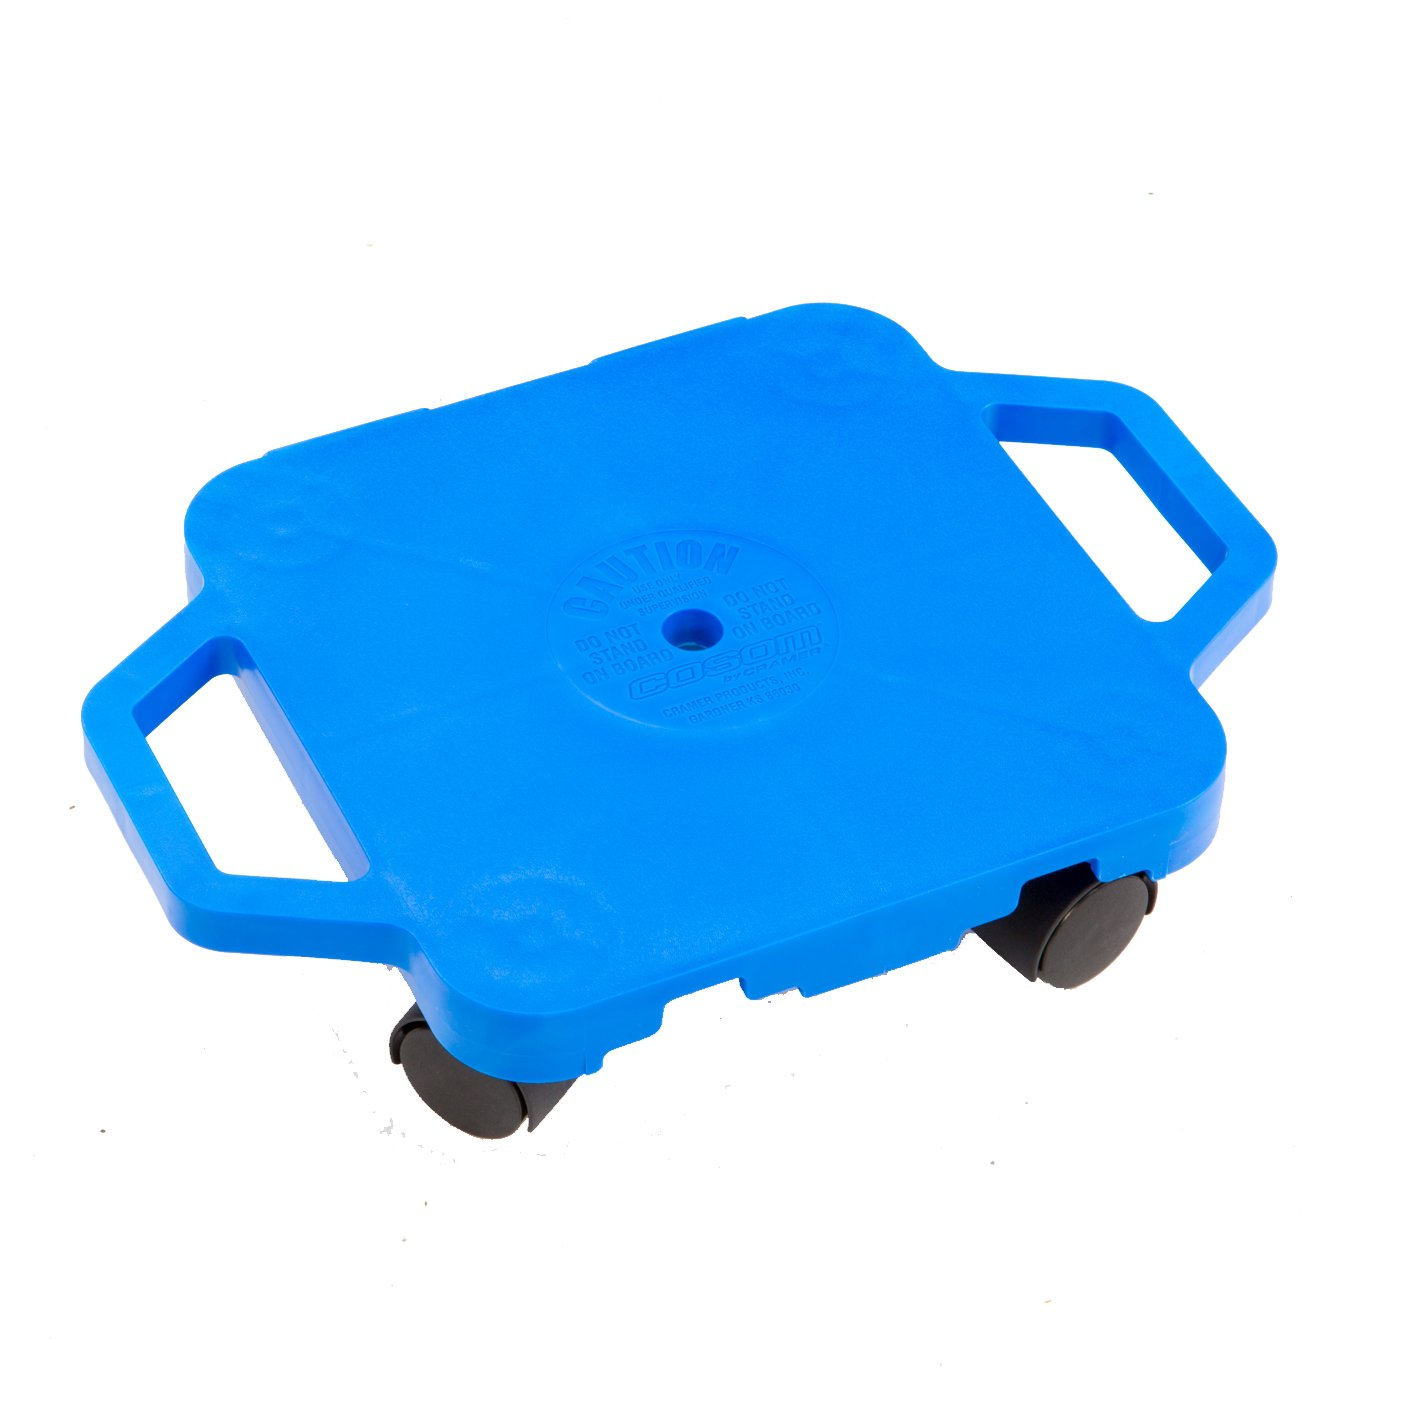 Cosom Scooter Board, 12 Inch Children's Sit & Scoot Board With 2 Inch Non-Marring Nylon Casters & Safety Guards for Physical Education Class, Sliding Boards with Safety Handles, Blue